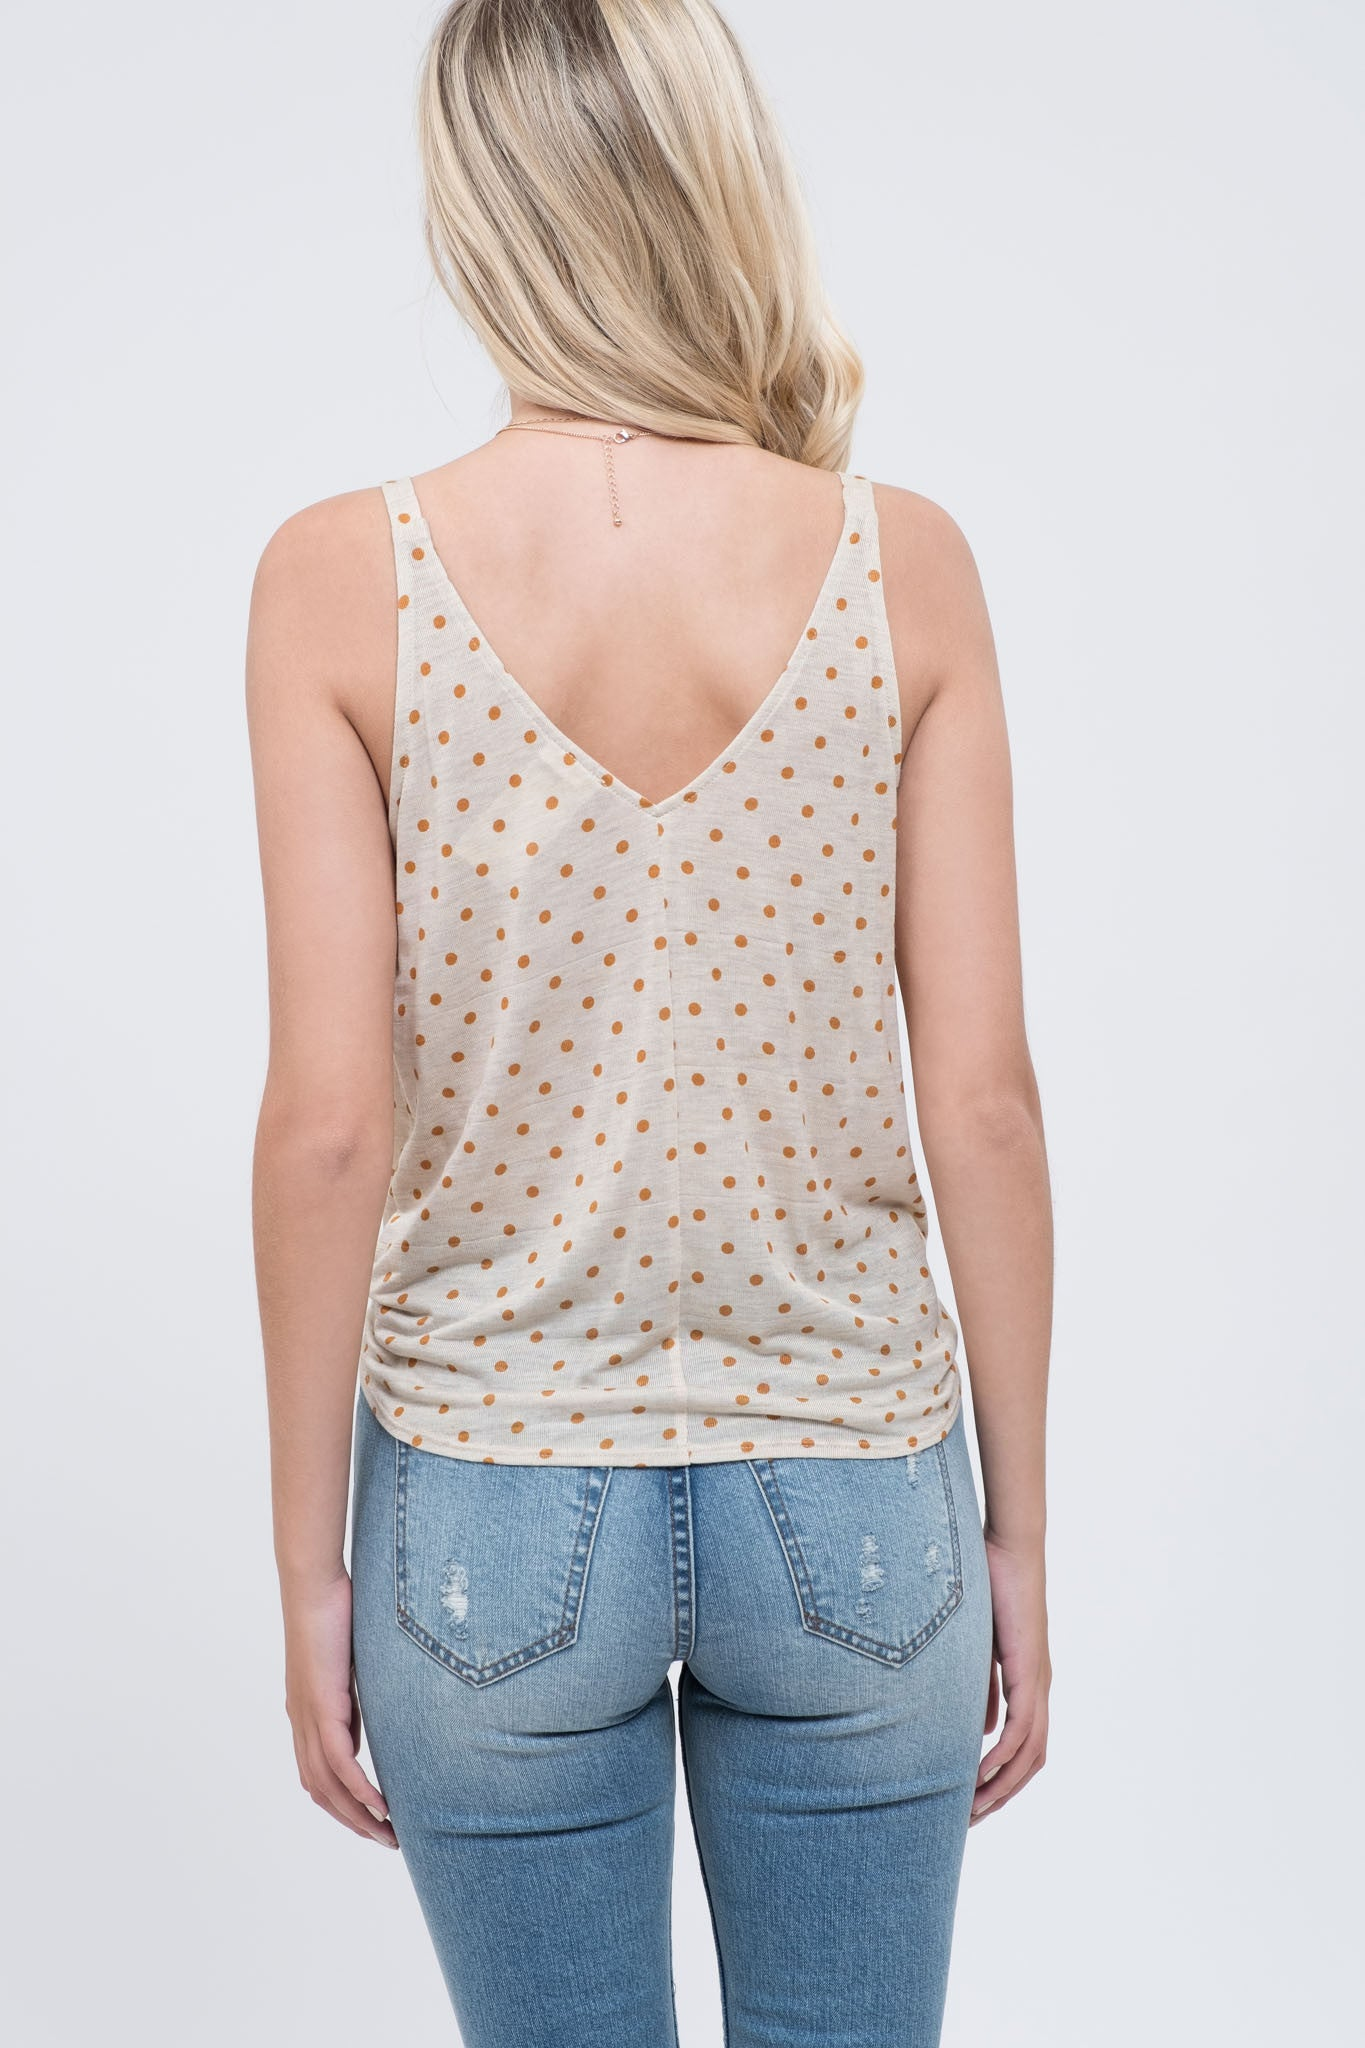 Ivory tank top with orange polka dots featuring a front tie detail.